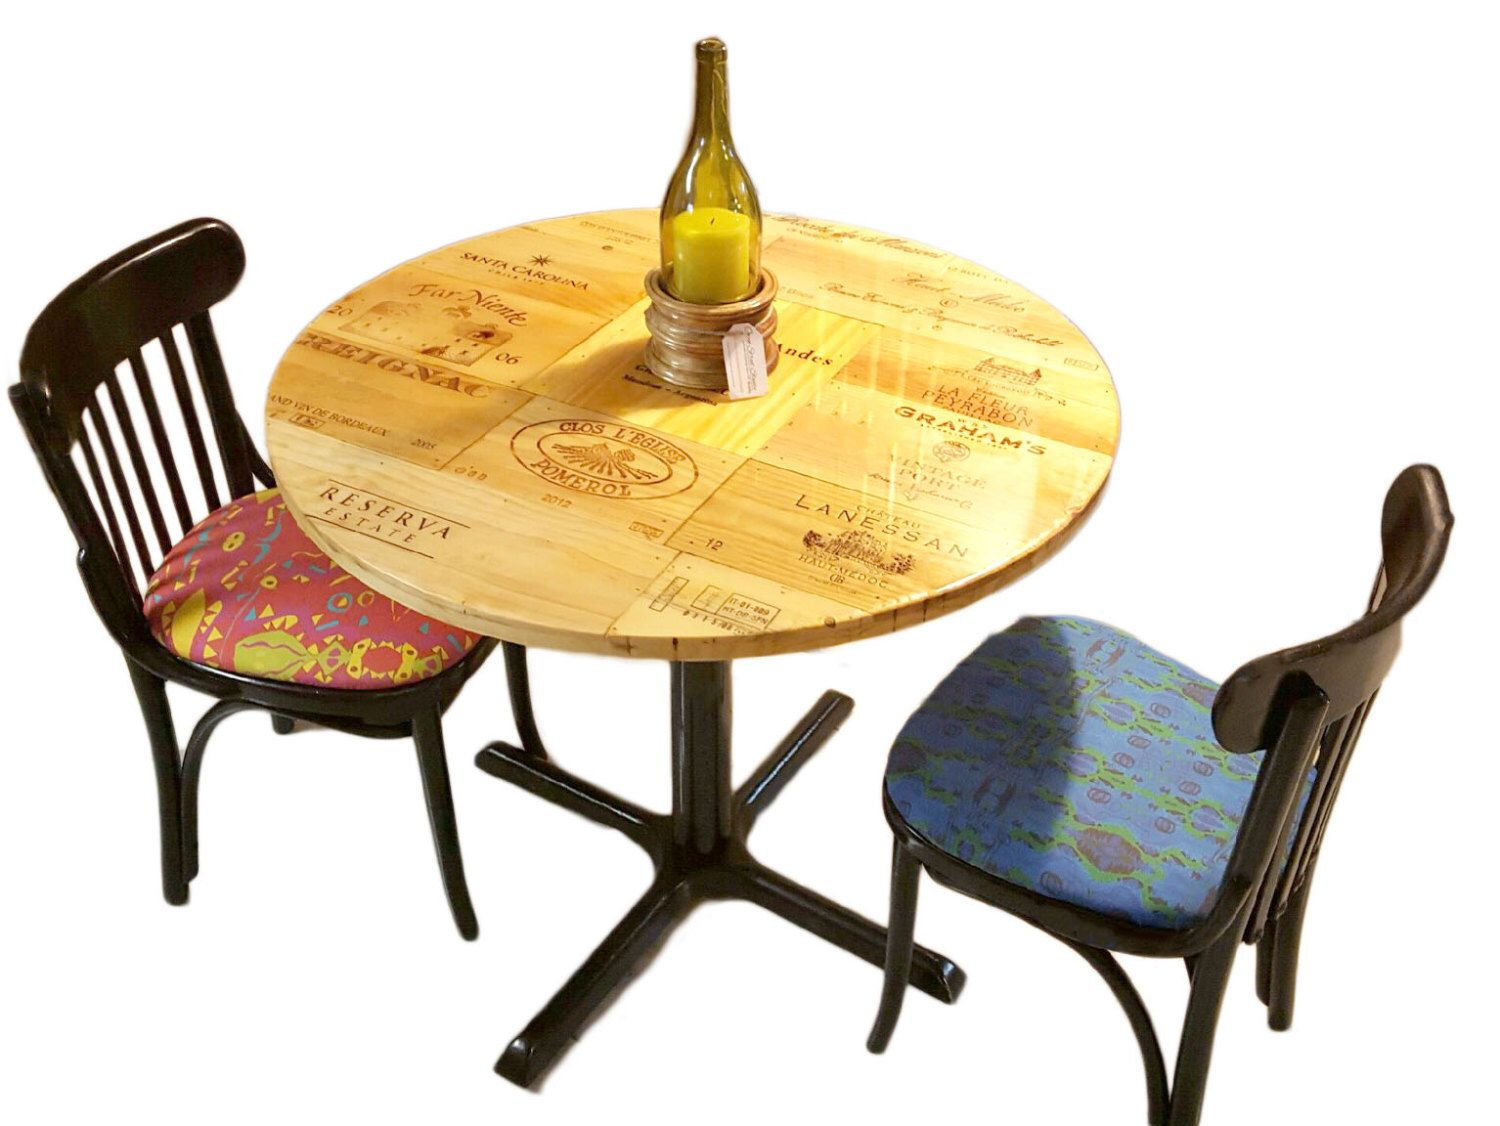 Wine crate cafe table and chairs rustic reclaimed wood table